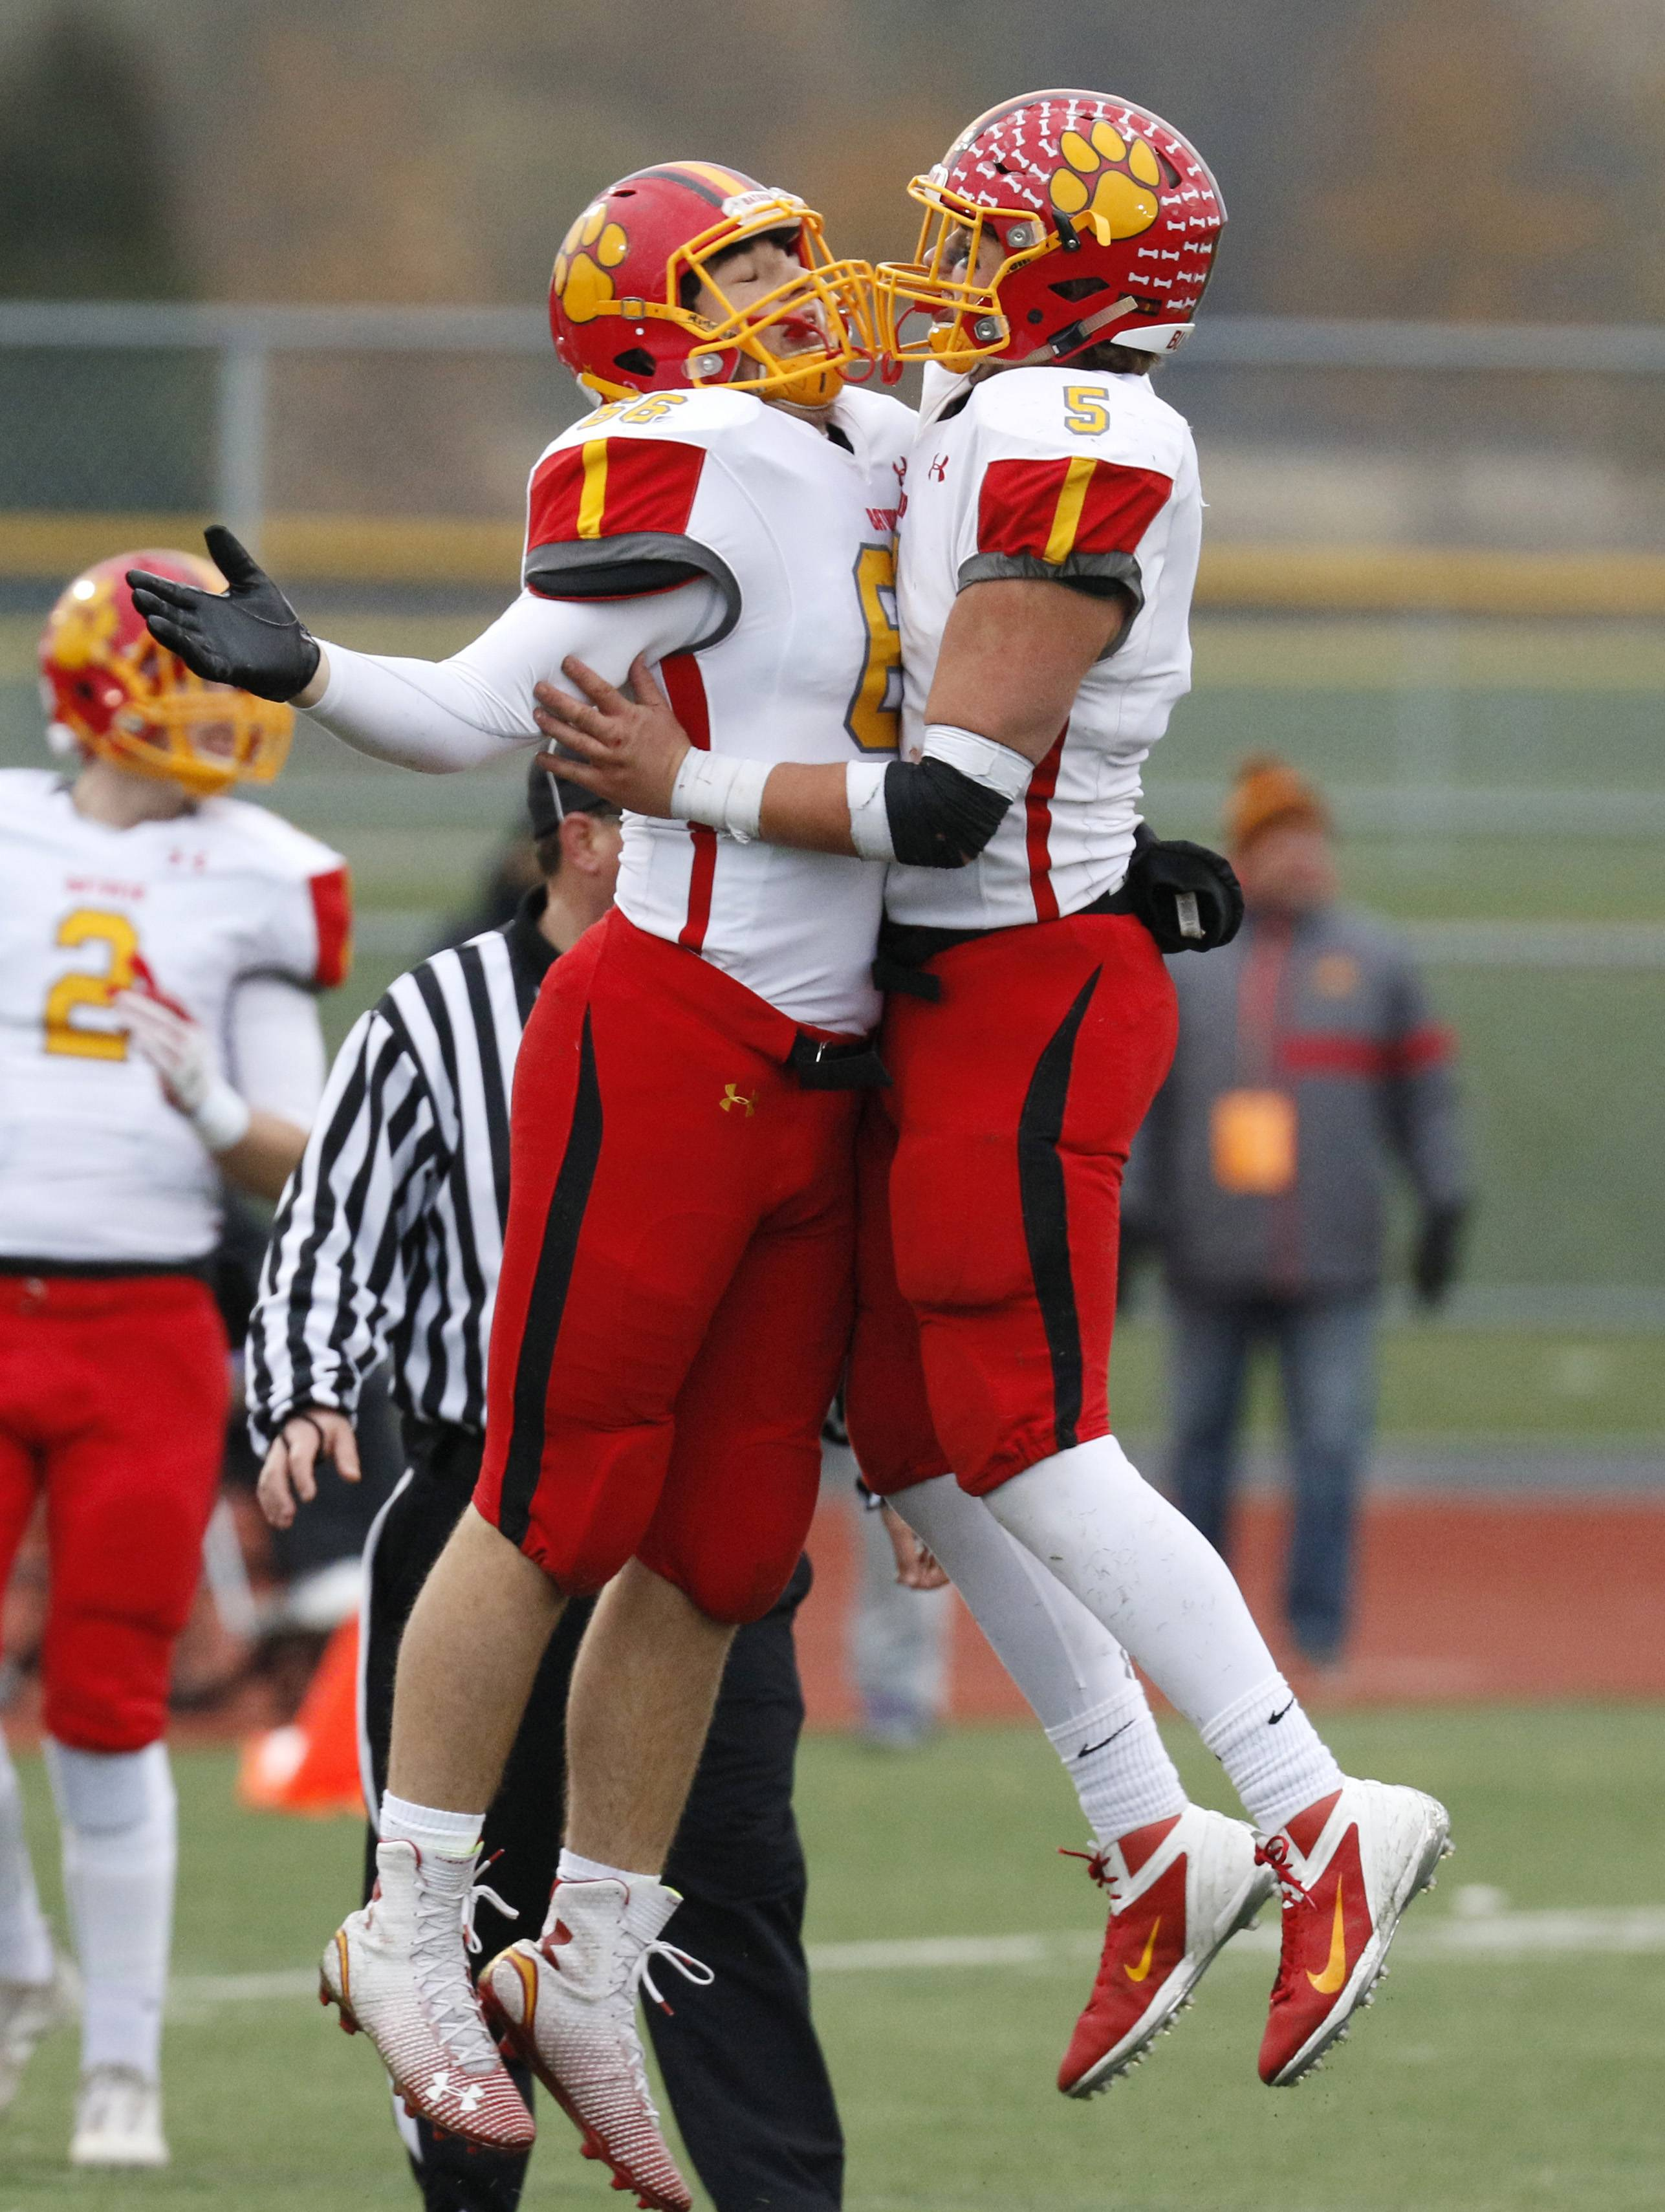 Batavia's Anthony Glisson, left, celebrates with Luke Weerts (5) after his team recovered a second half fumble against Lincoln-Way West during Class 7A football quarterfinal action in New Lenox.